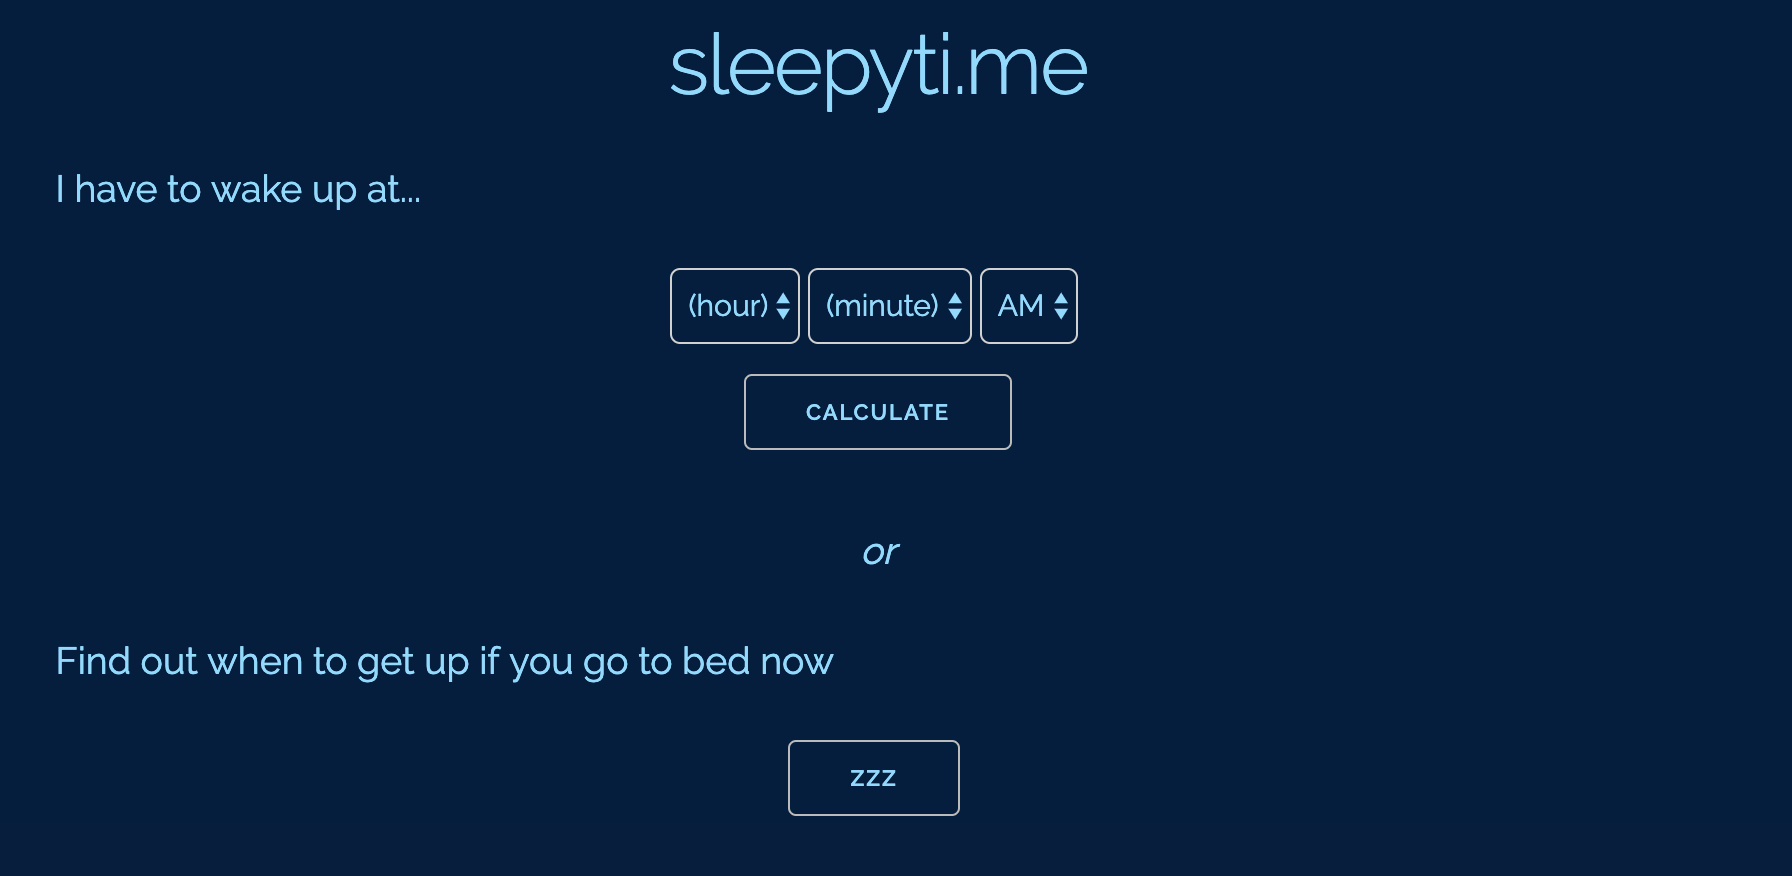 sleepyti.me - This simple calculator measures average sleep cycles to guide your best bedtimes and alarm clock settings. It feels a bit dated, but honestly, if students are going to be self-aware about their sleep habits while studying, this is a useful tool that might motivate students to optimize their studying decisions.